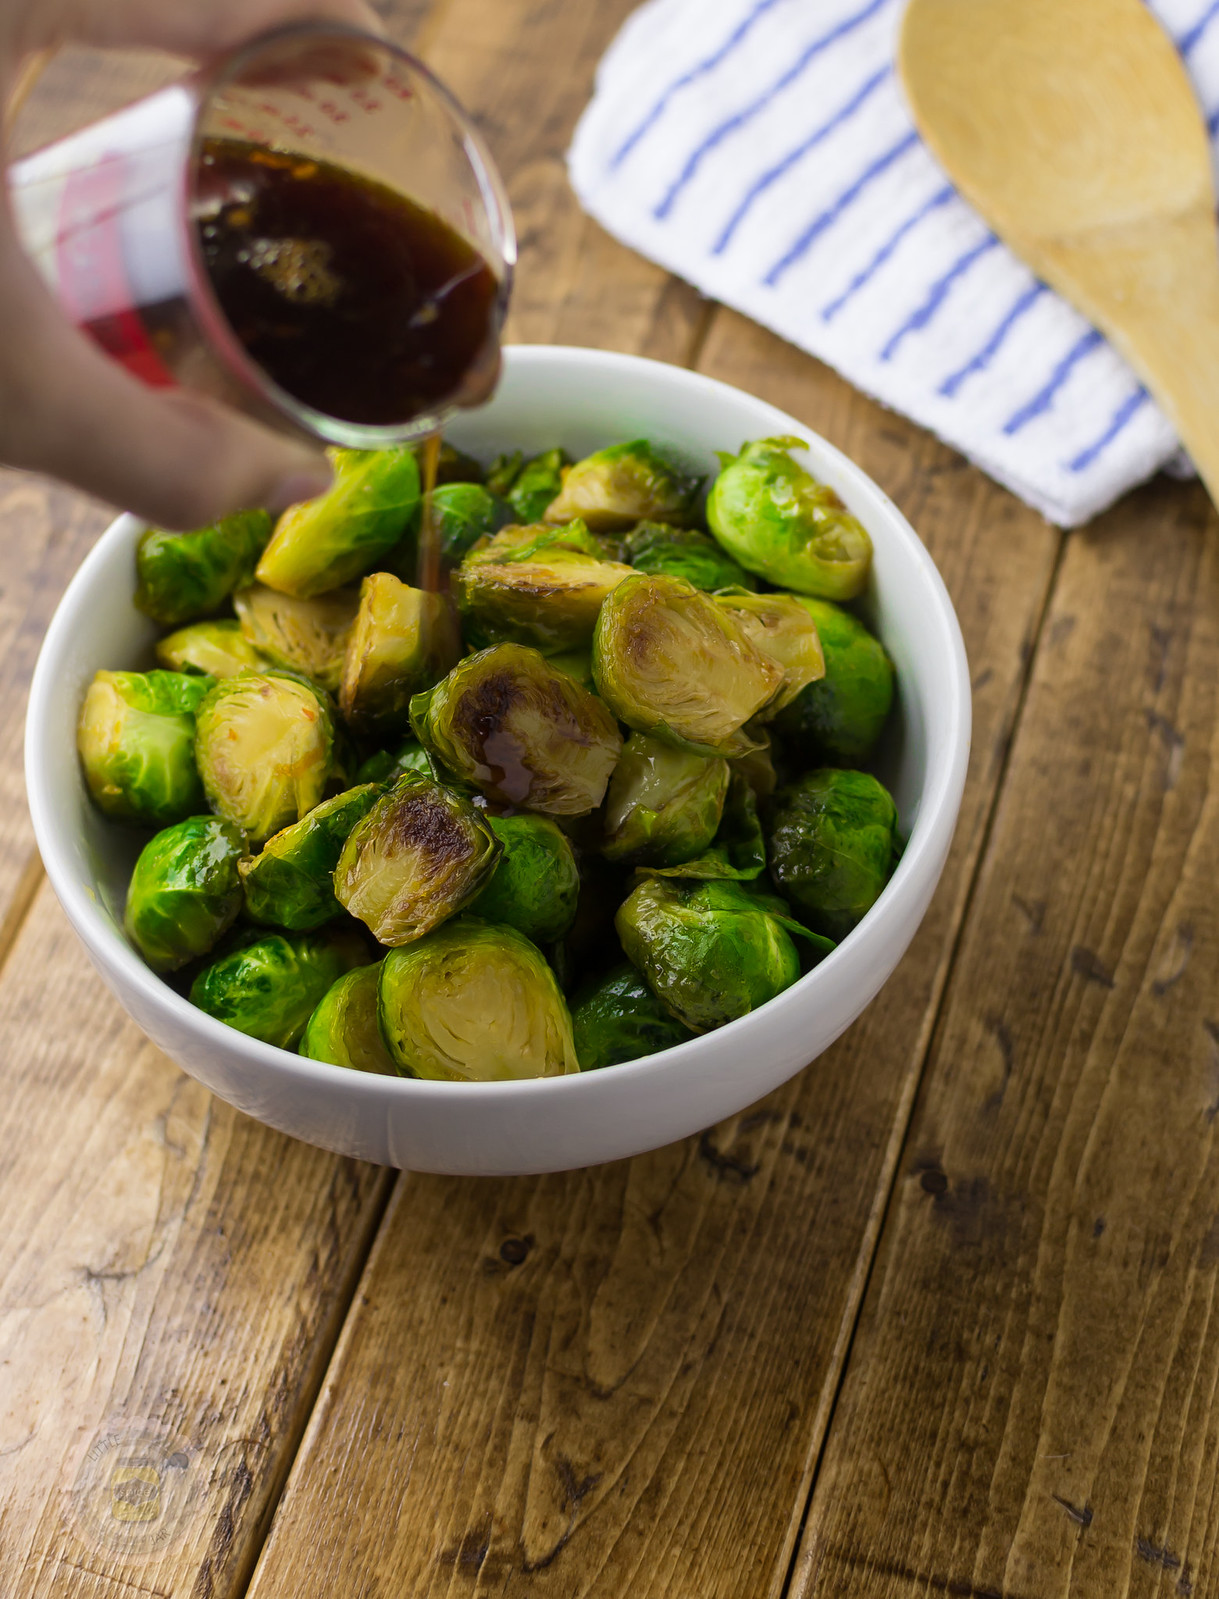 Orange Honey and Soy Glazed Brussel Sprouts Pouring Sauce